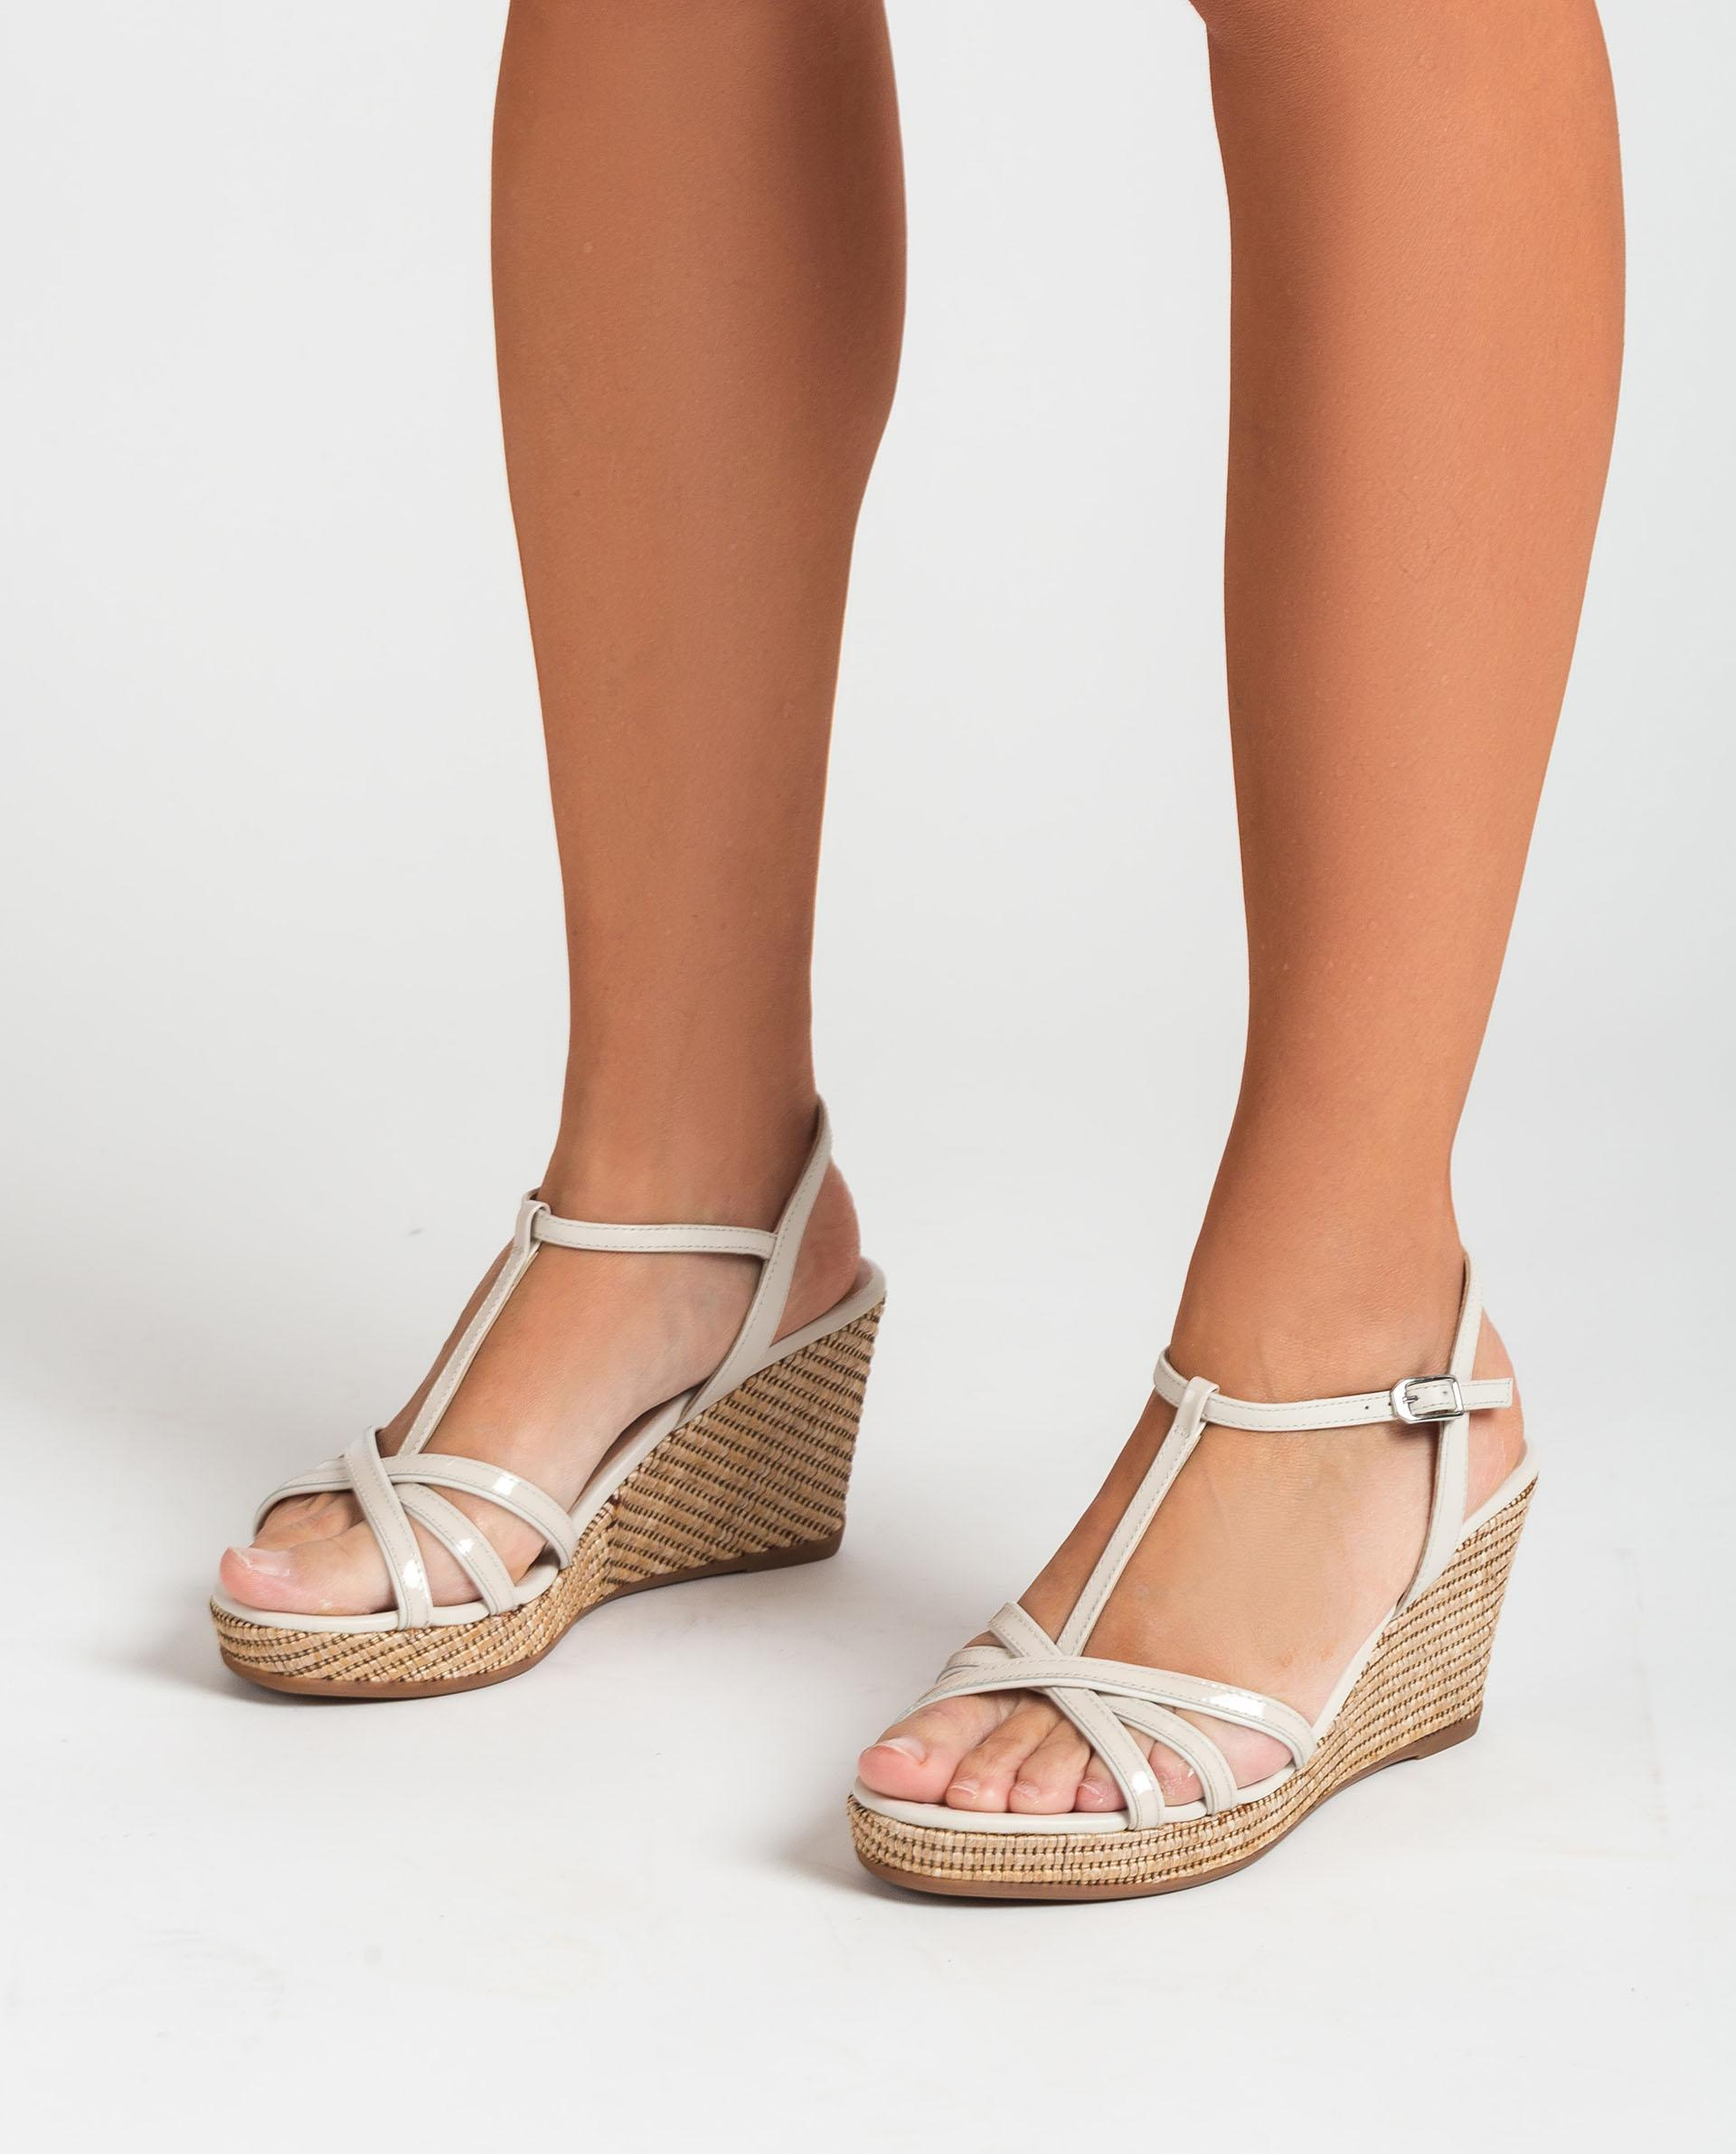 UNISA Wedge patent leather T-strap sandals LLINAR_21_PA_NA 2